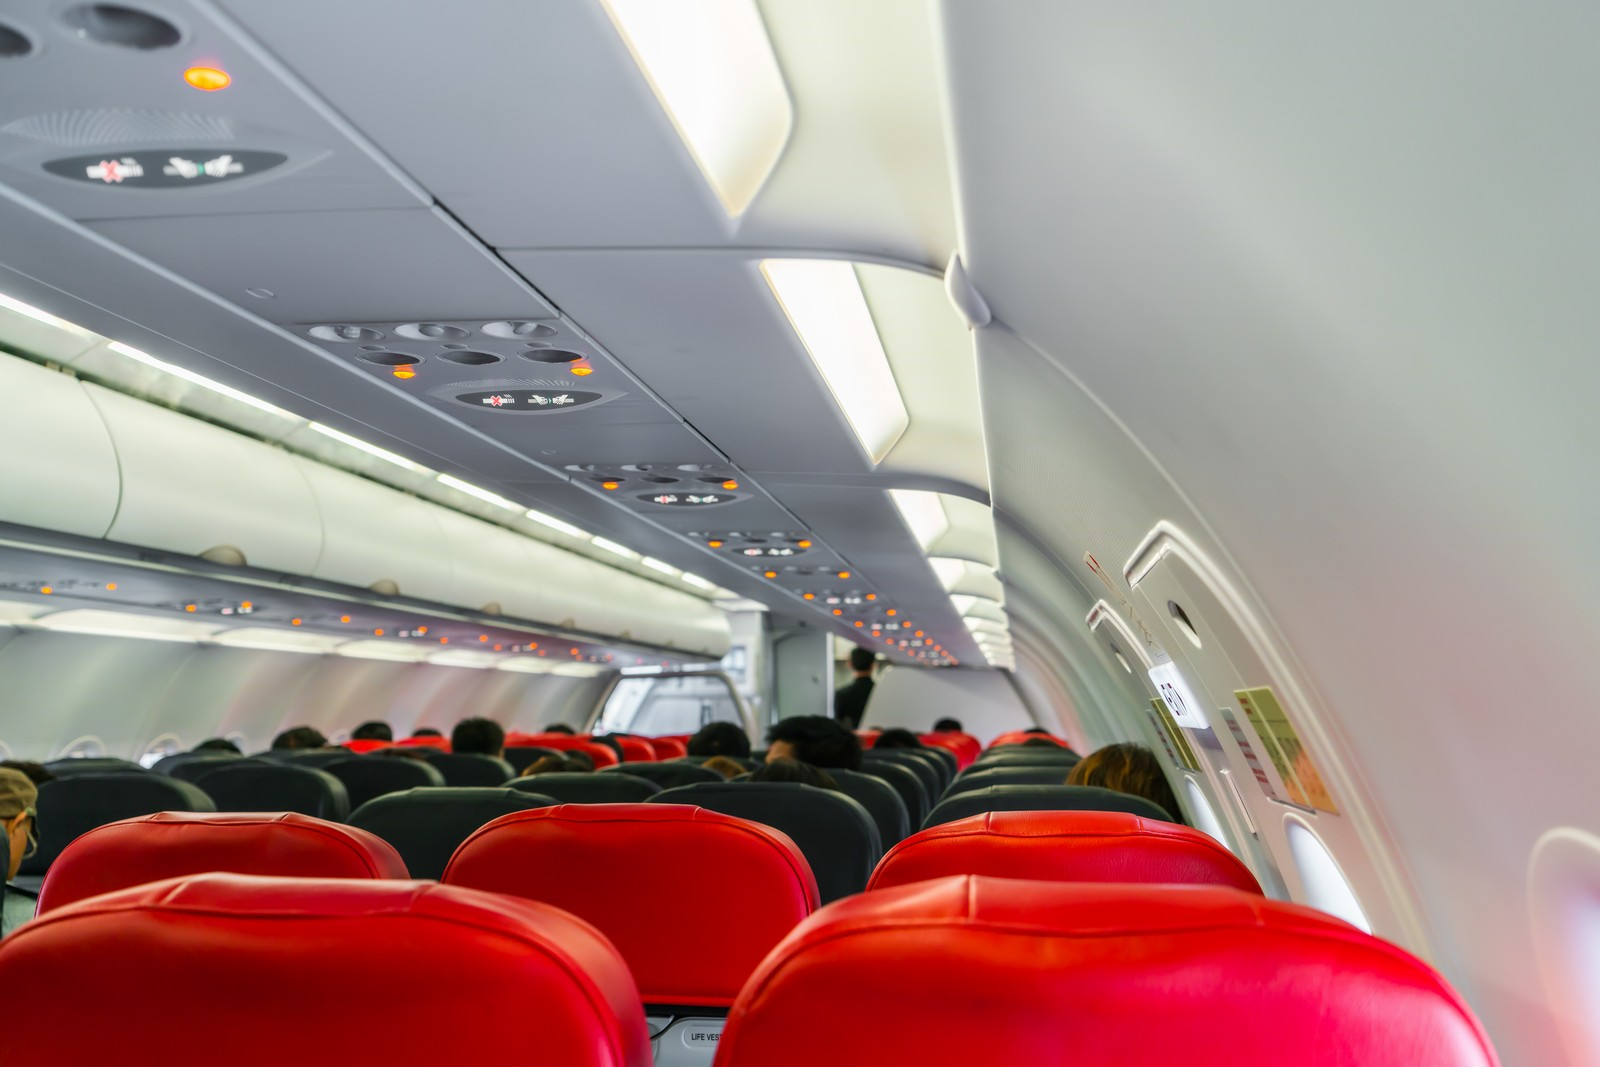 Accounting payments on airplanes with JoinPAY «Aero»